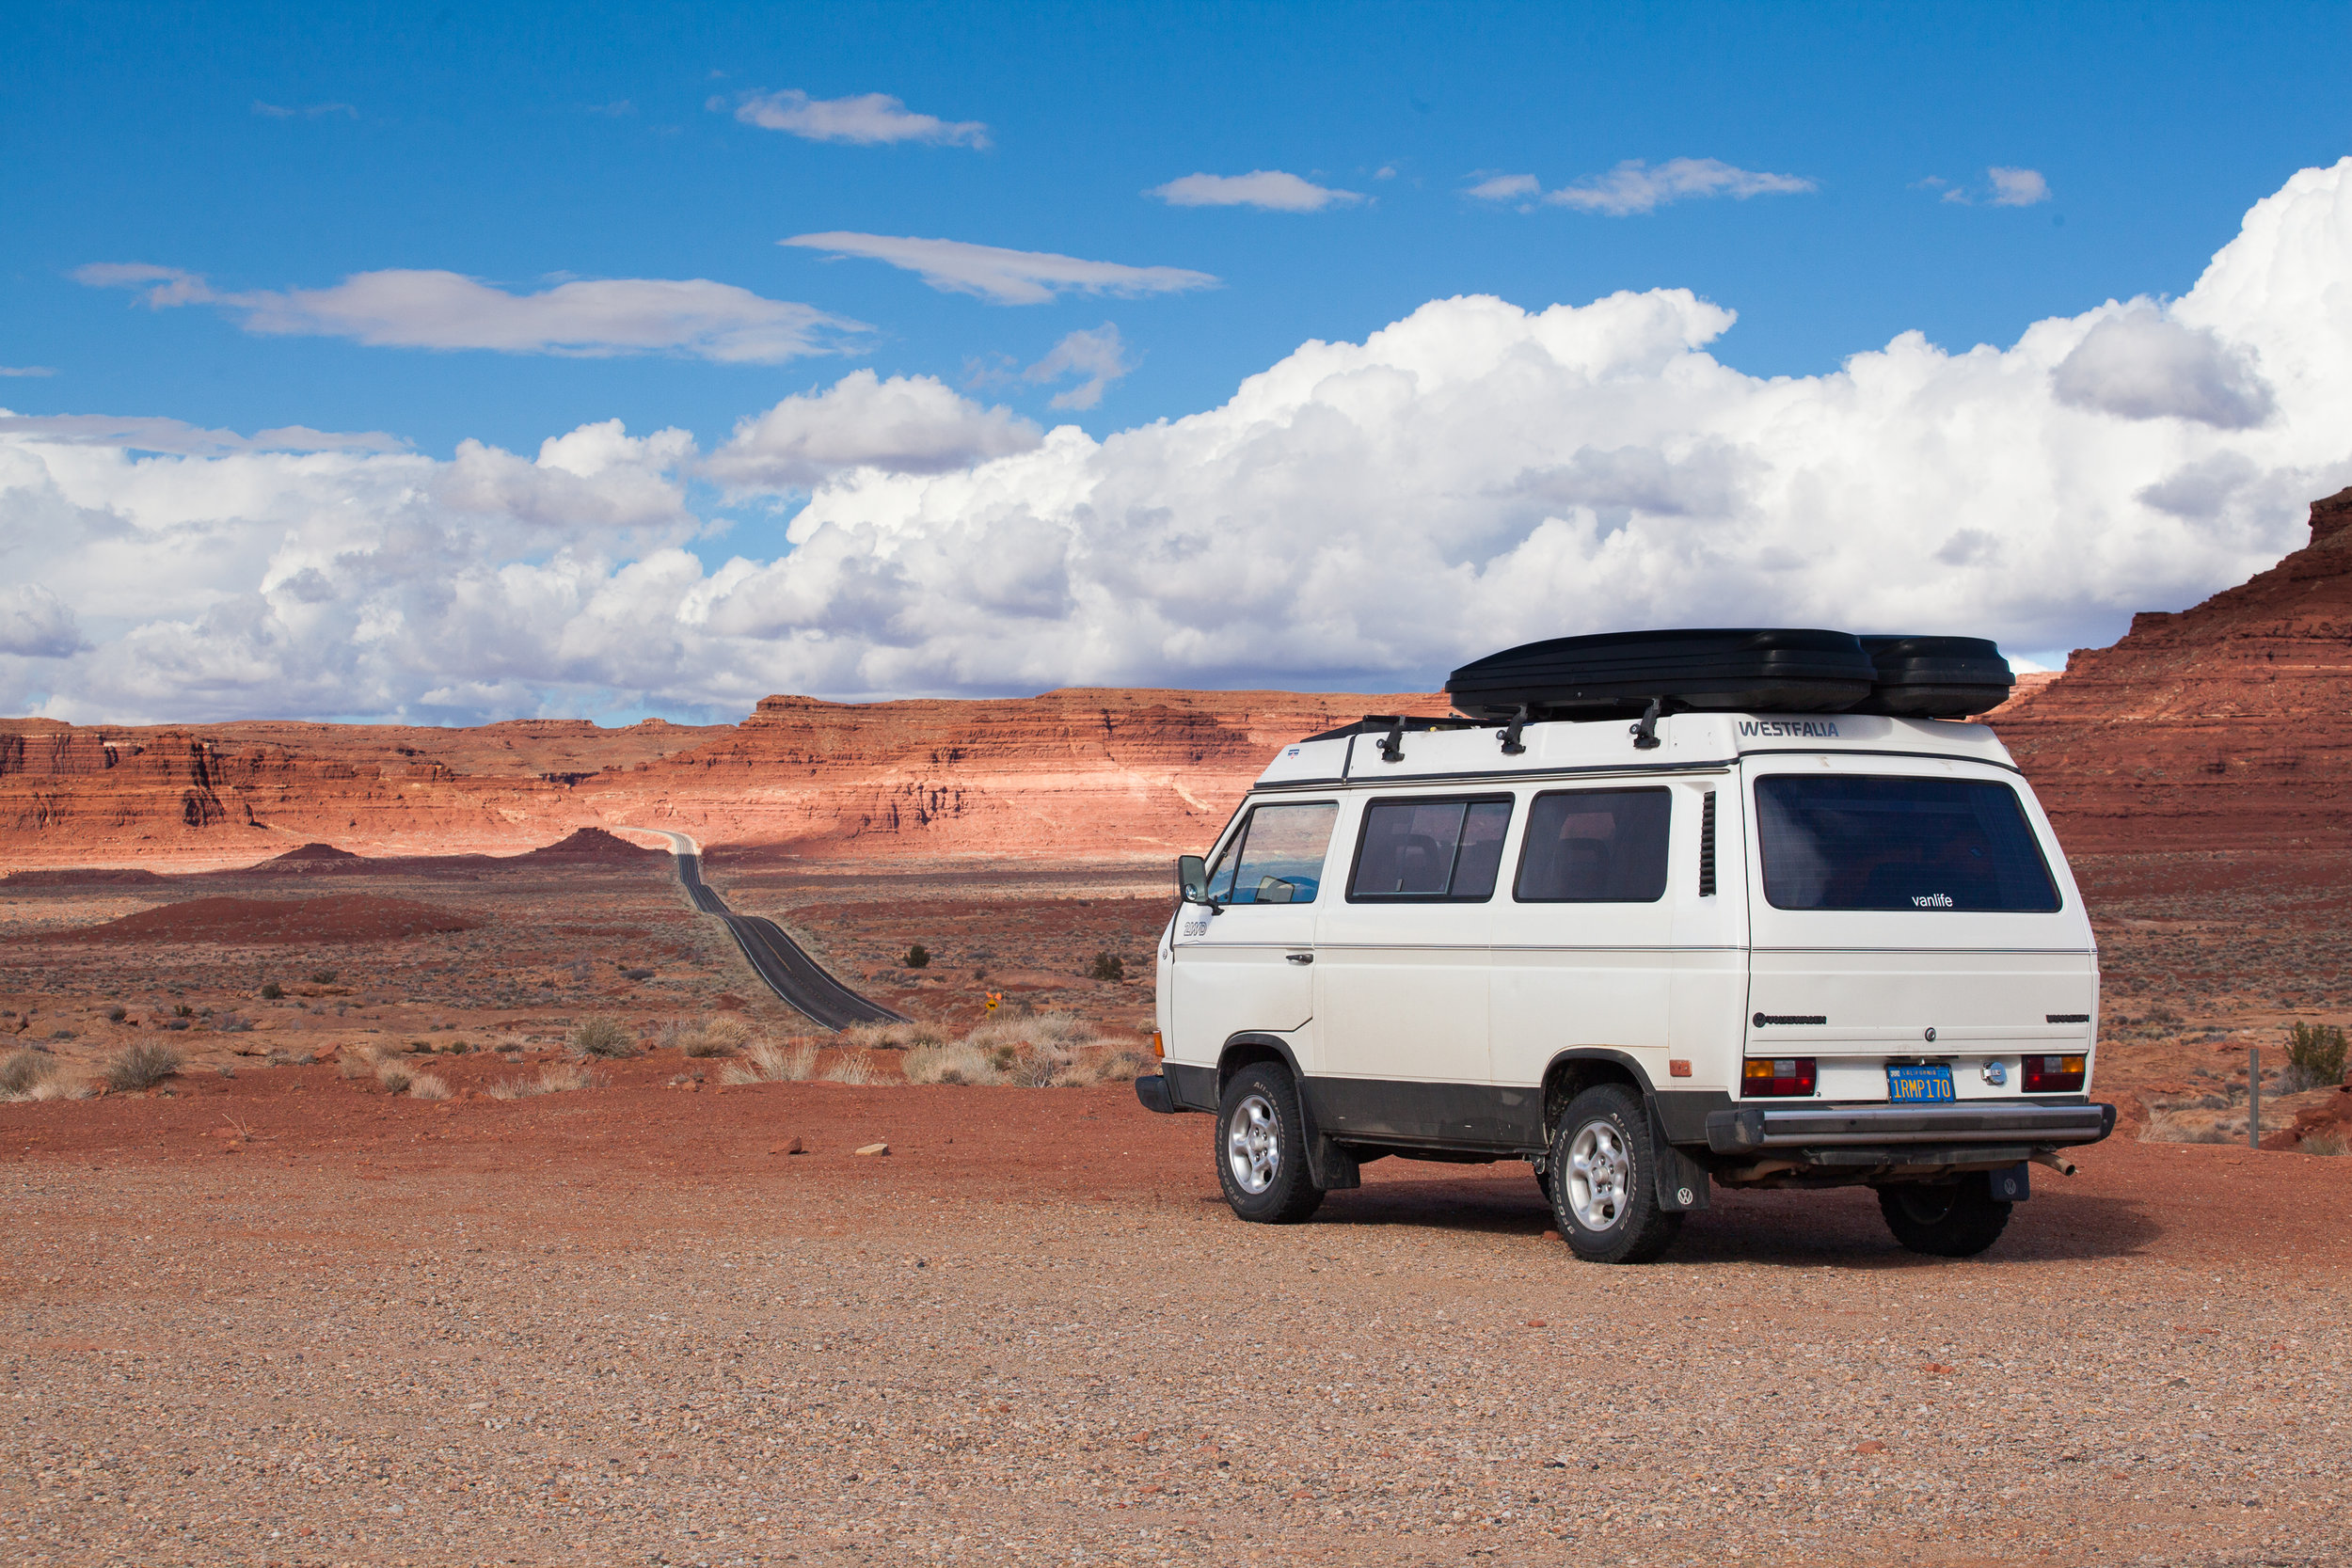 The open road and my Volkswagen Vanagon in Southern Utah